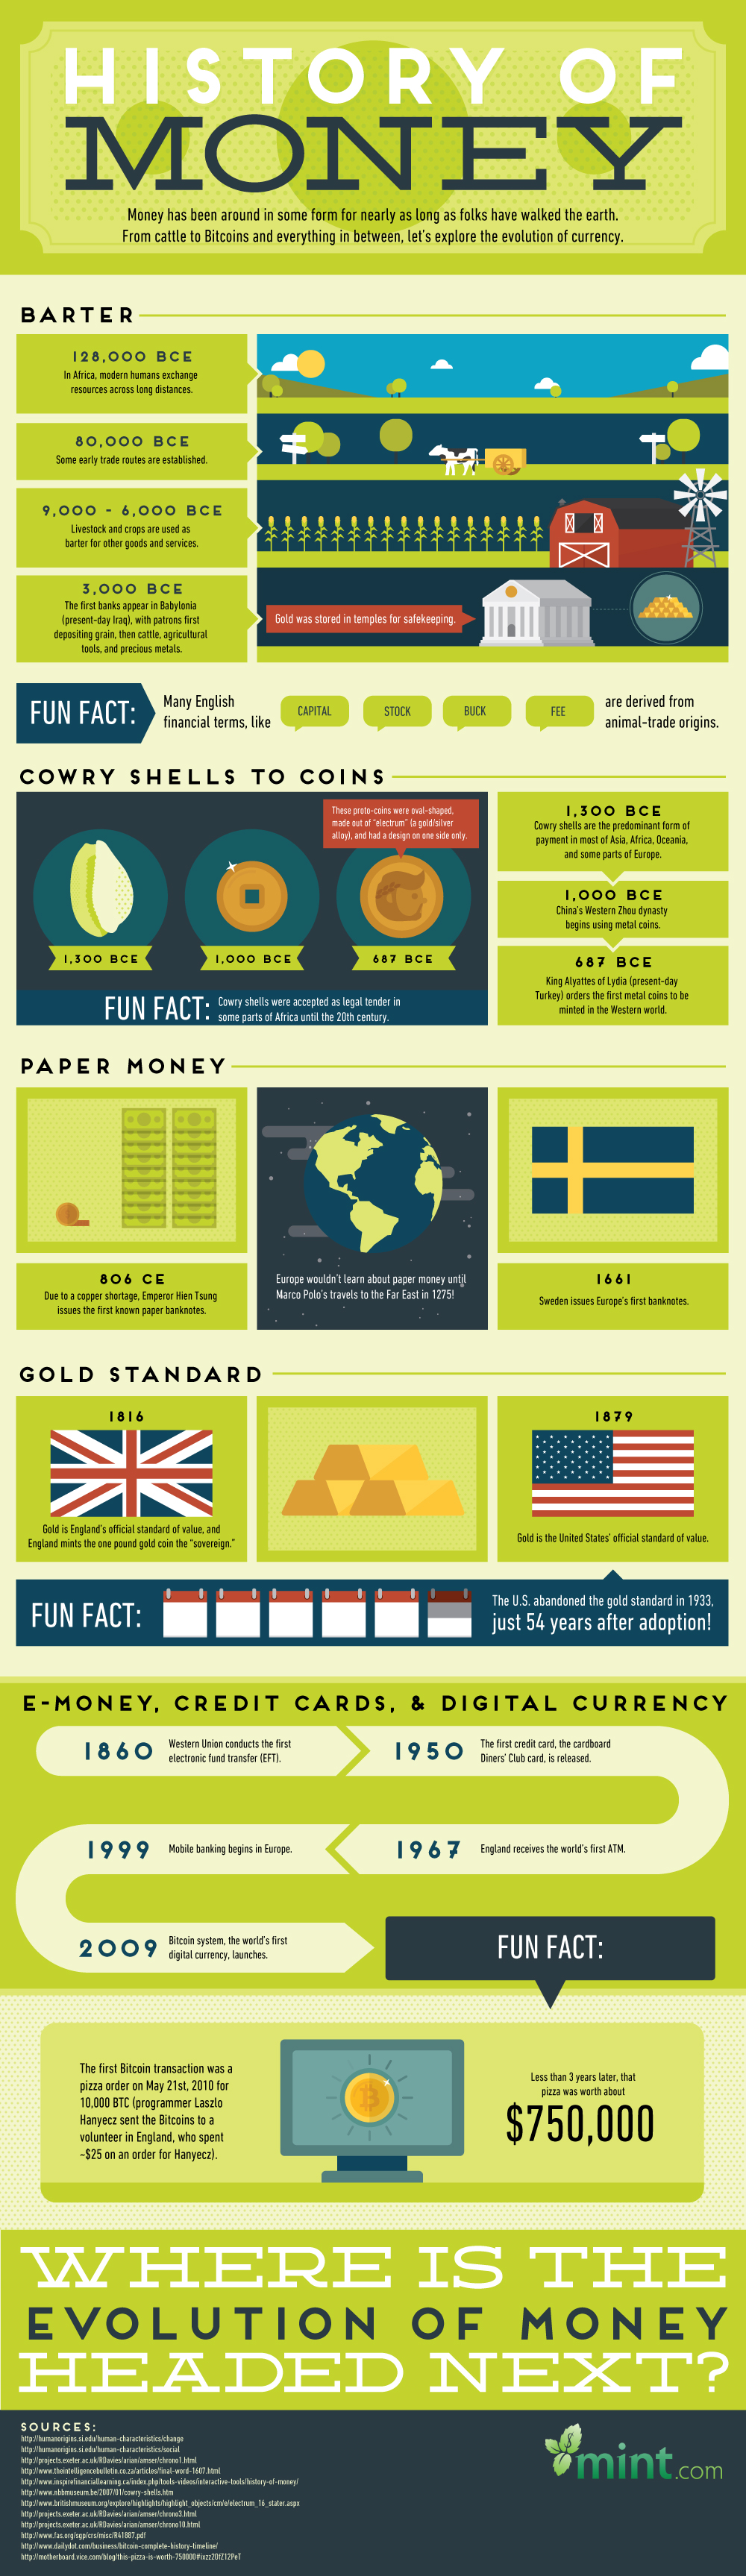 The History of Money: A Visual Guide to the Evolution of Currency